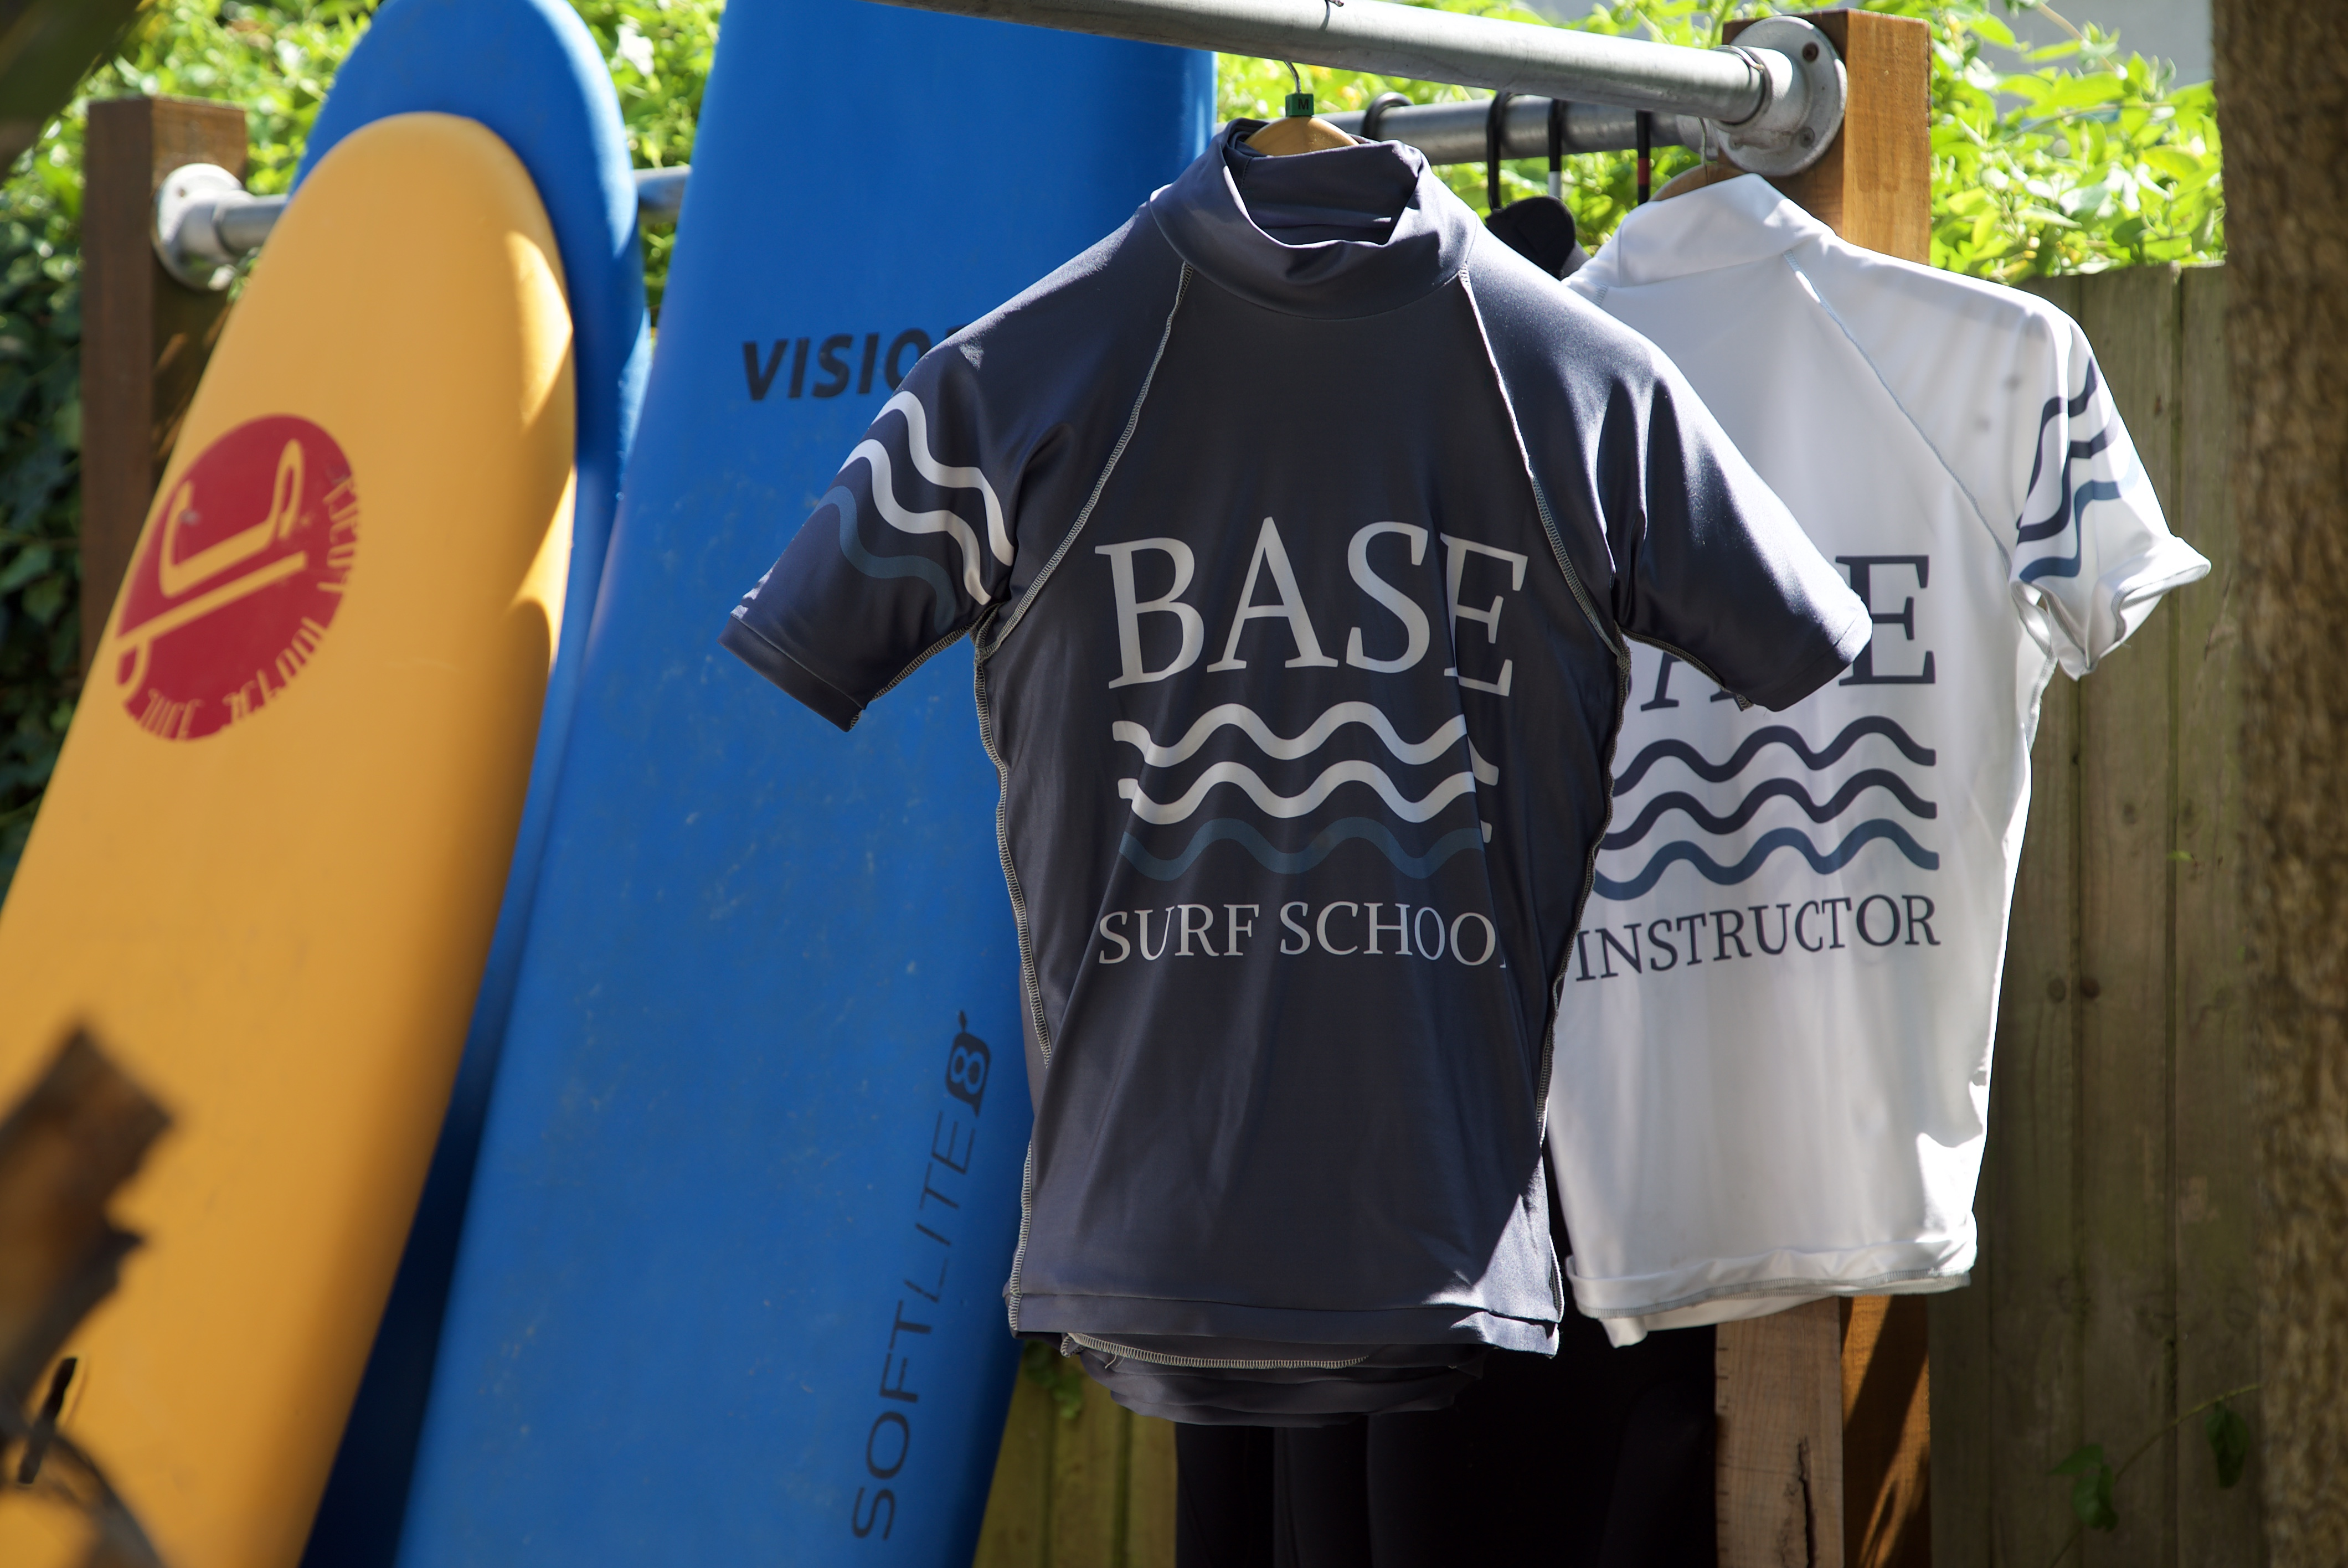 Base Surf School Newquay